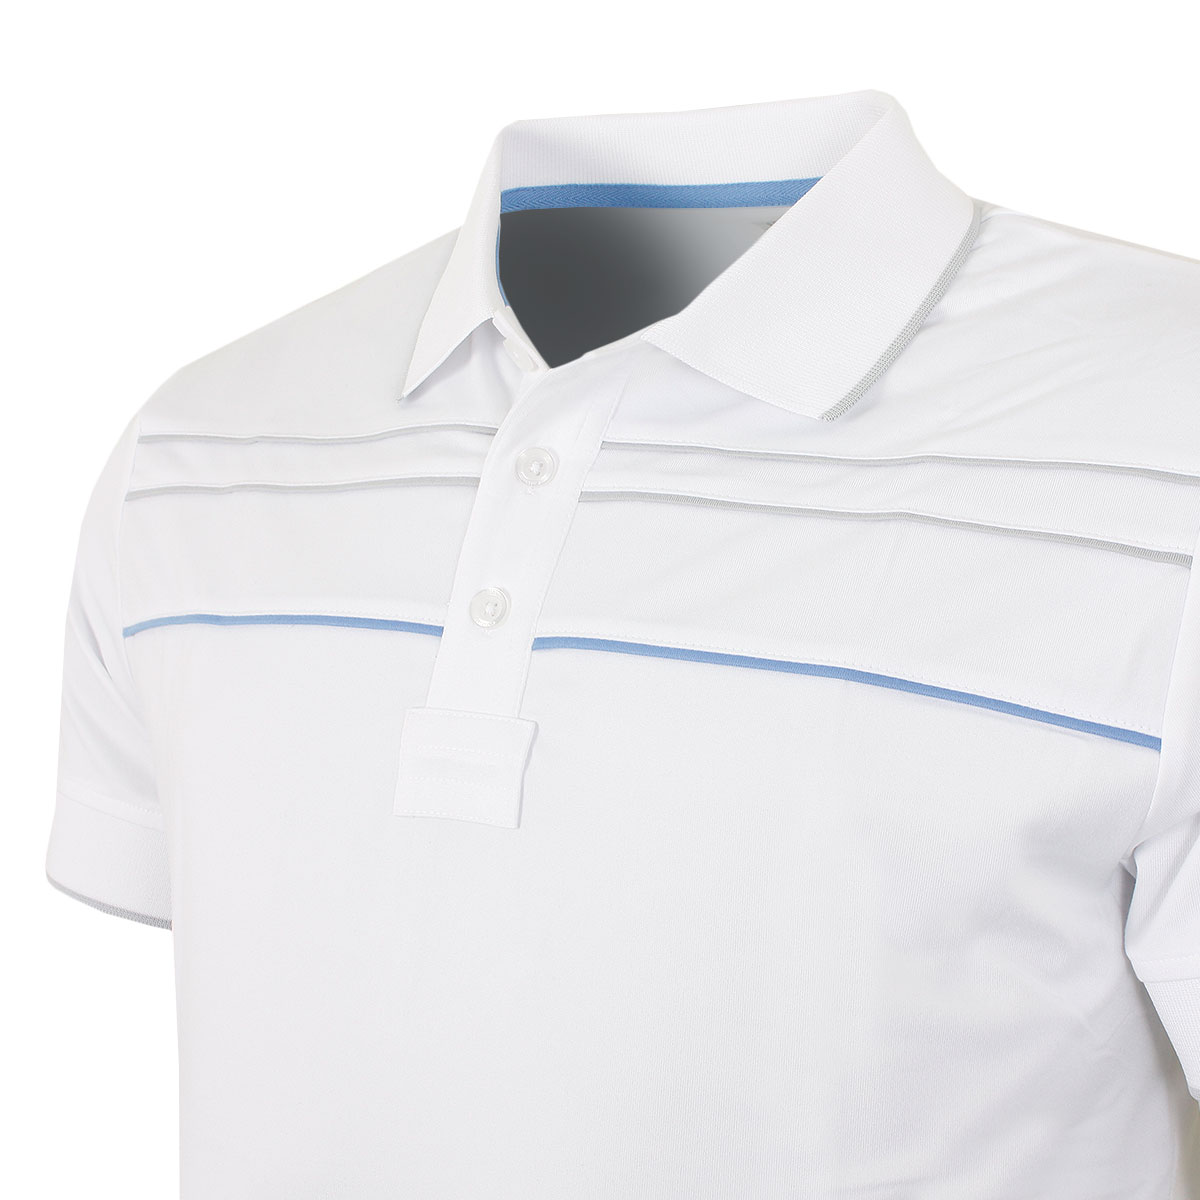 Callaway-Golf-Mens-X-Range-Stretch-Chest-Piped-Polo-Shirt-60-OFF-RRP thumbnail 4